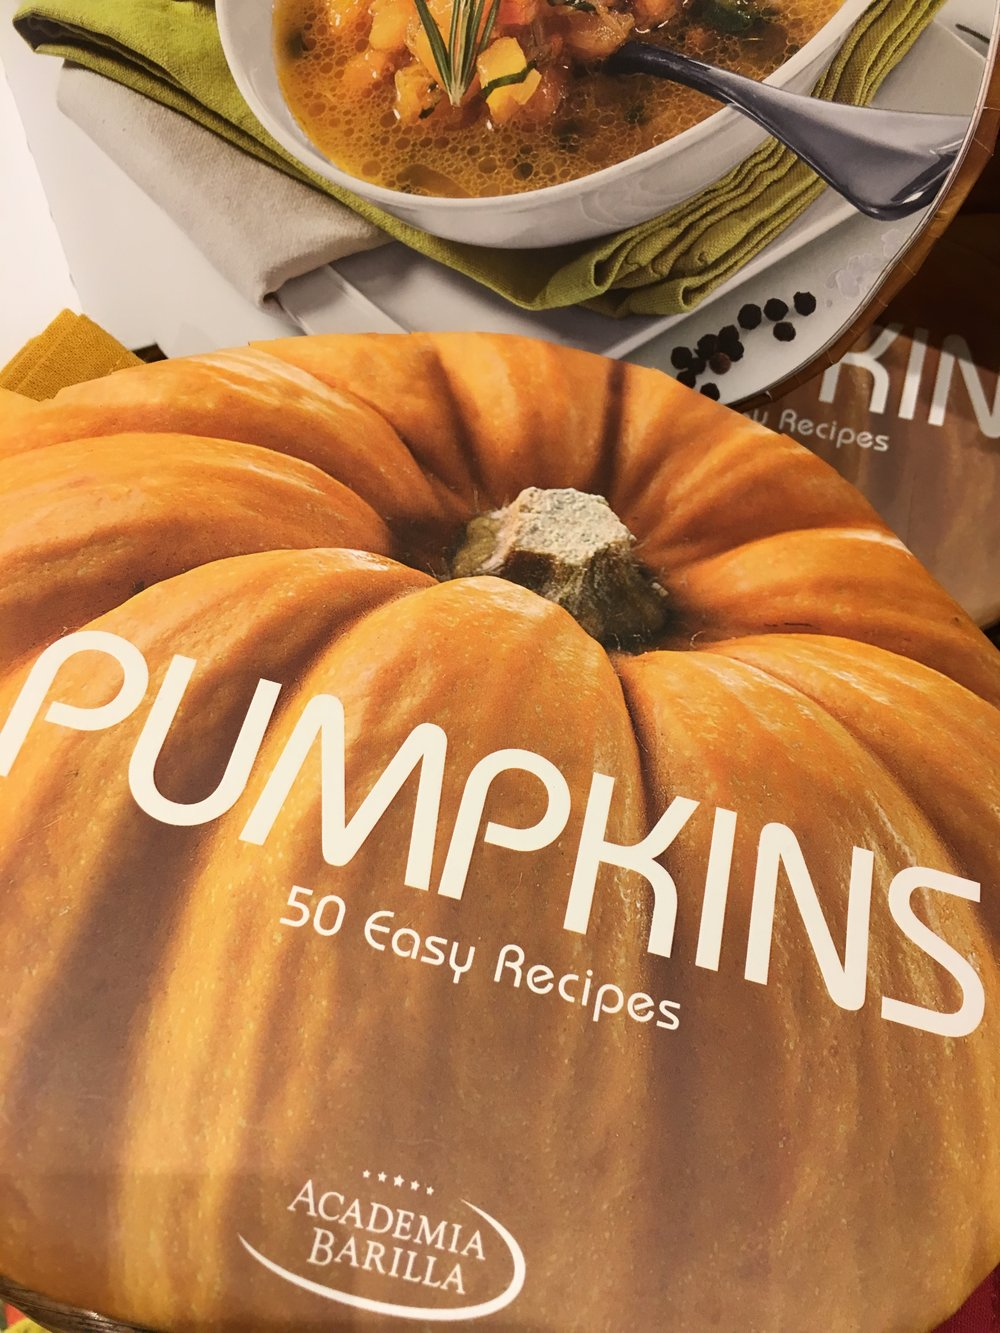 Whether you're an all pumpkin spice all the time kind of person or not, we bet you can find something inspiring in this fun book.